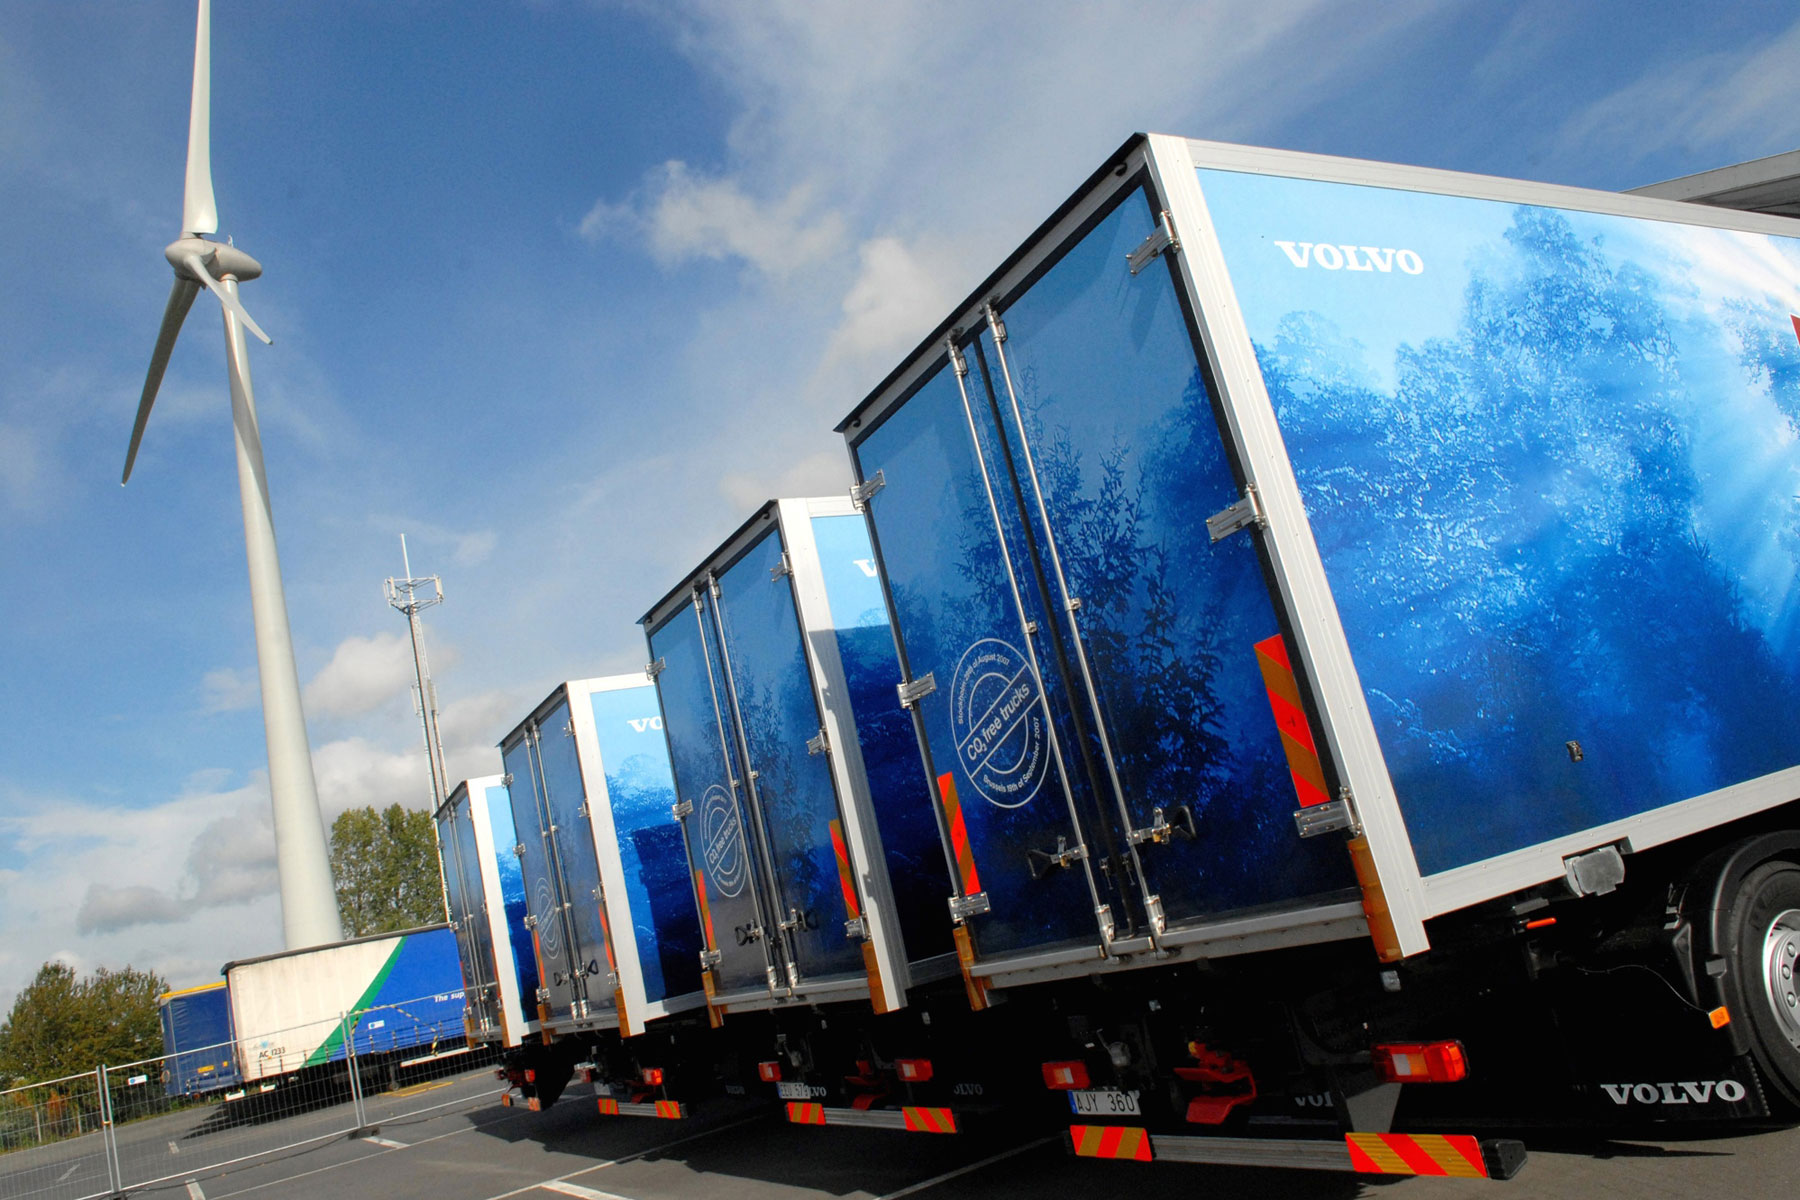 £12 million in fines for truckers carrying stowaways